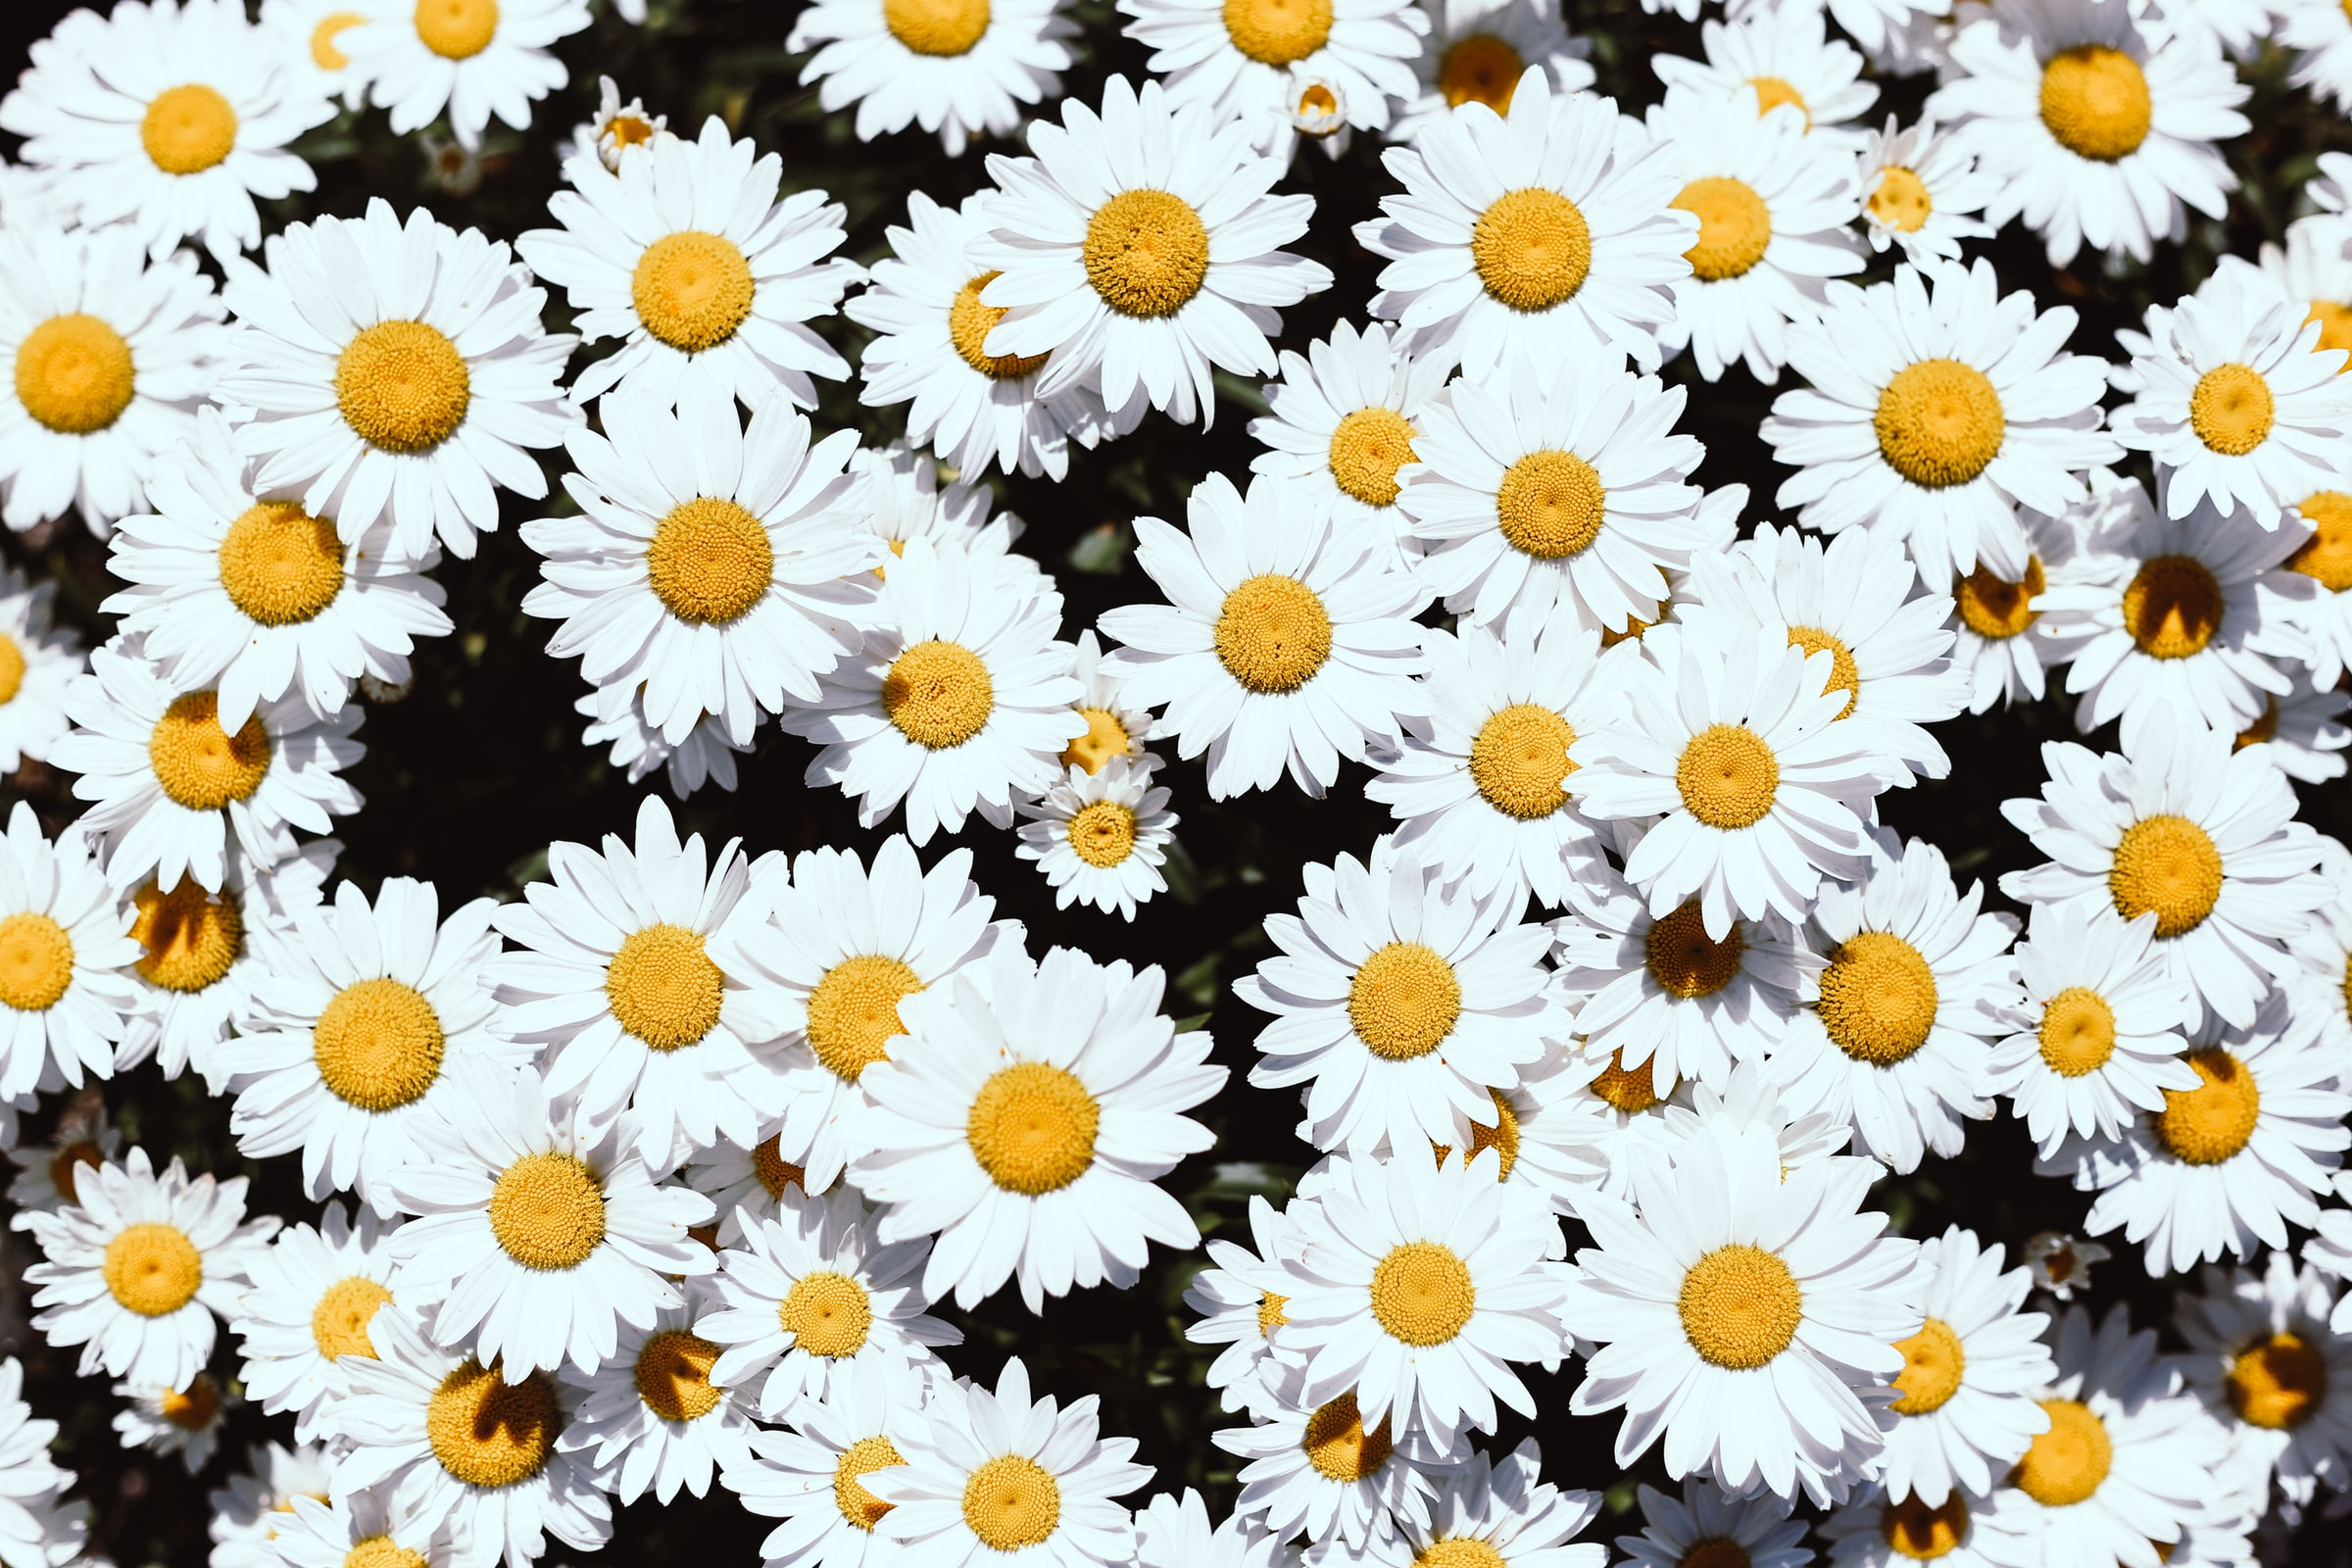 Daisy Meaning